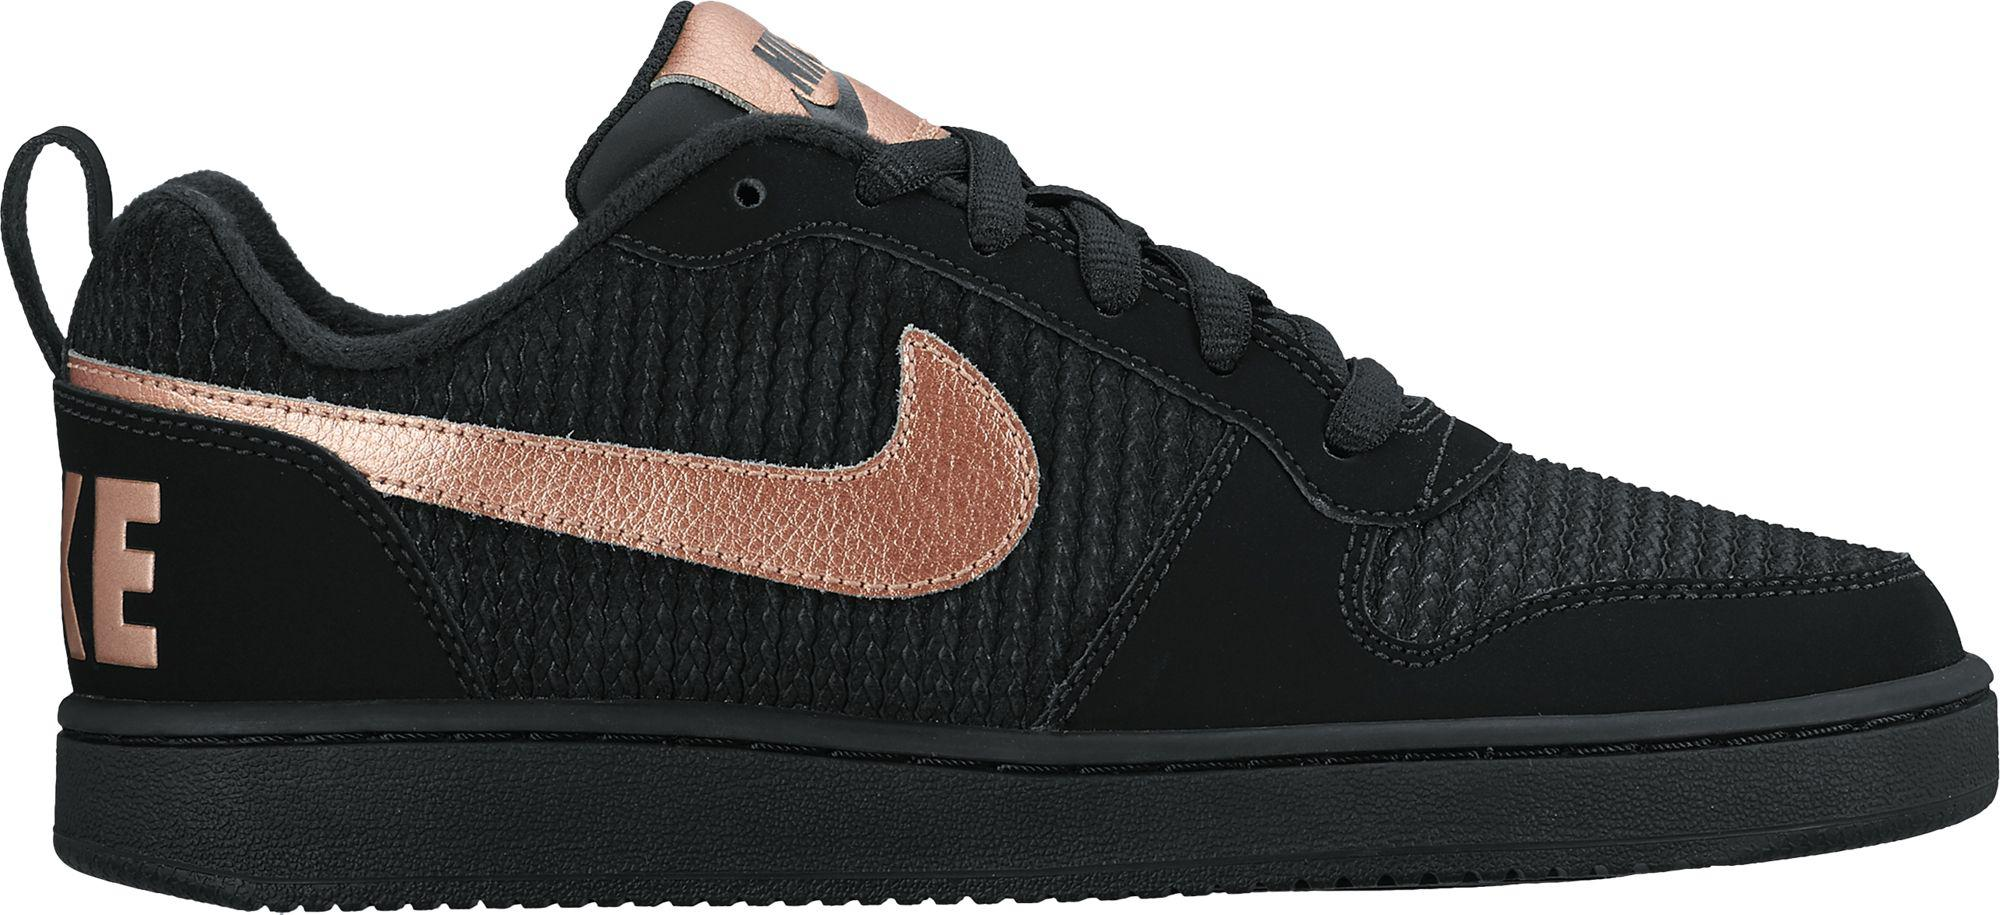 on sale d0e53 f696c Nike Court Borough Low Shoes in Black - Lyst